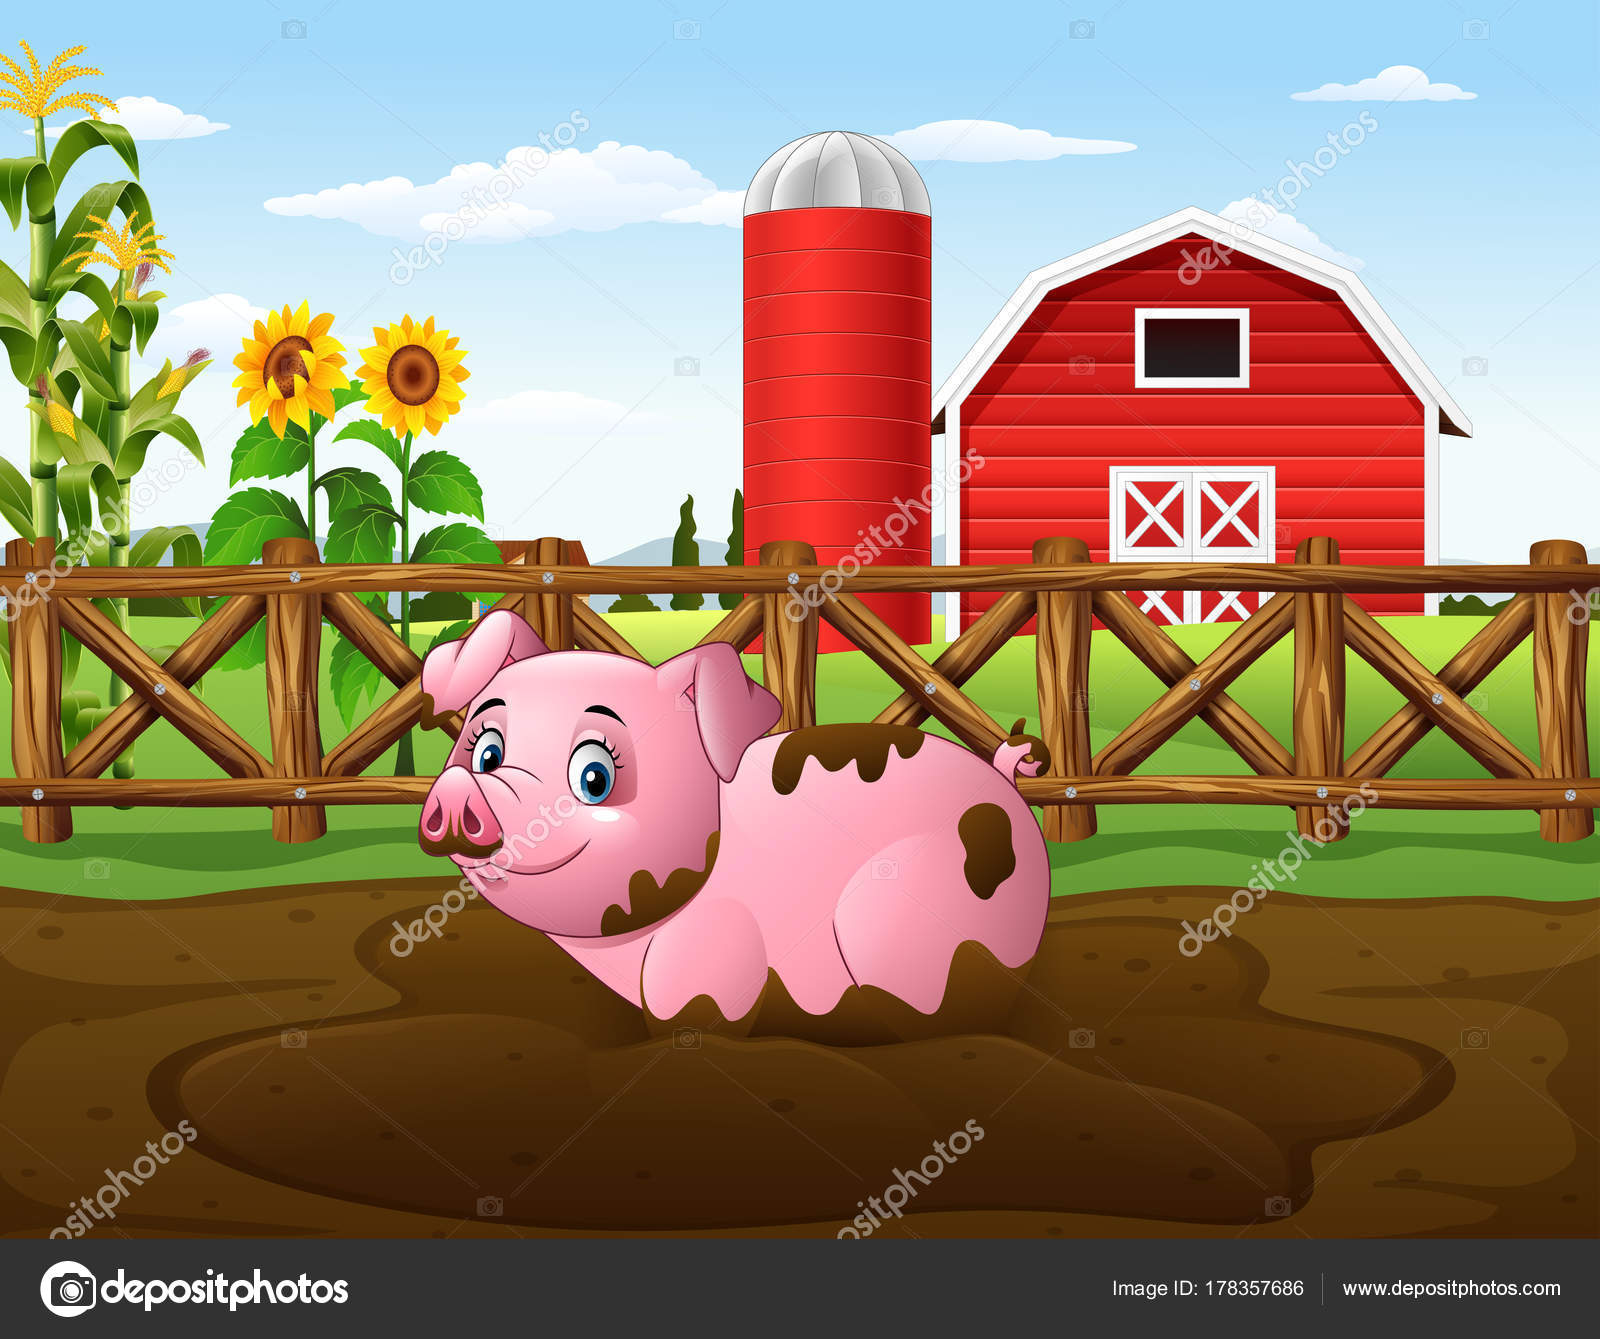 Mud clipart farm pig. Cartoon playing puddle stock